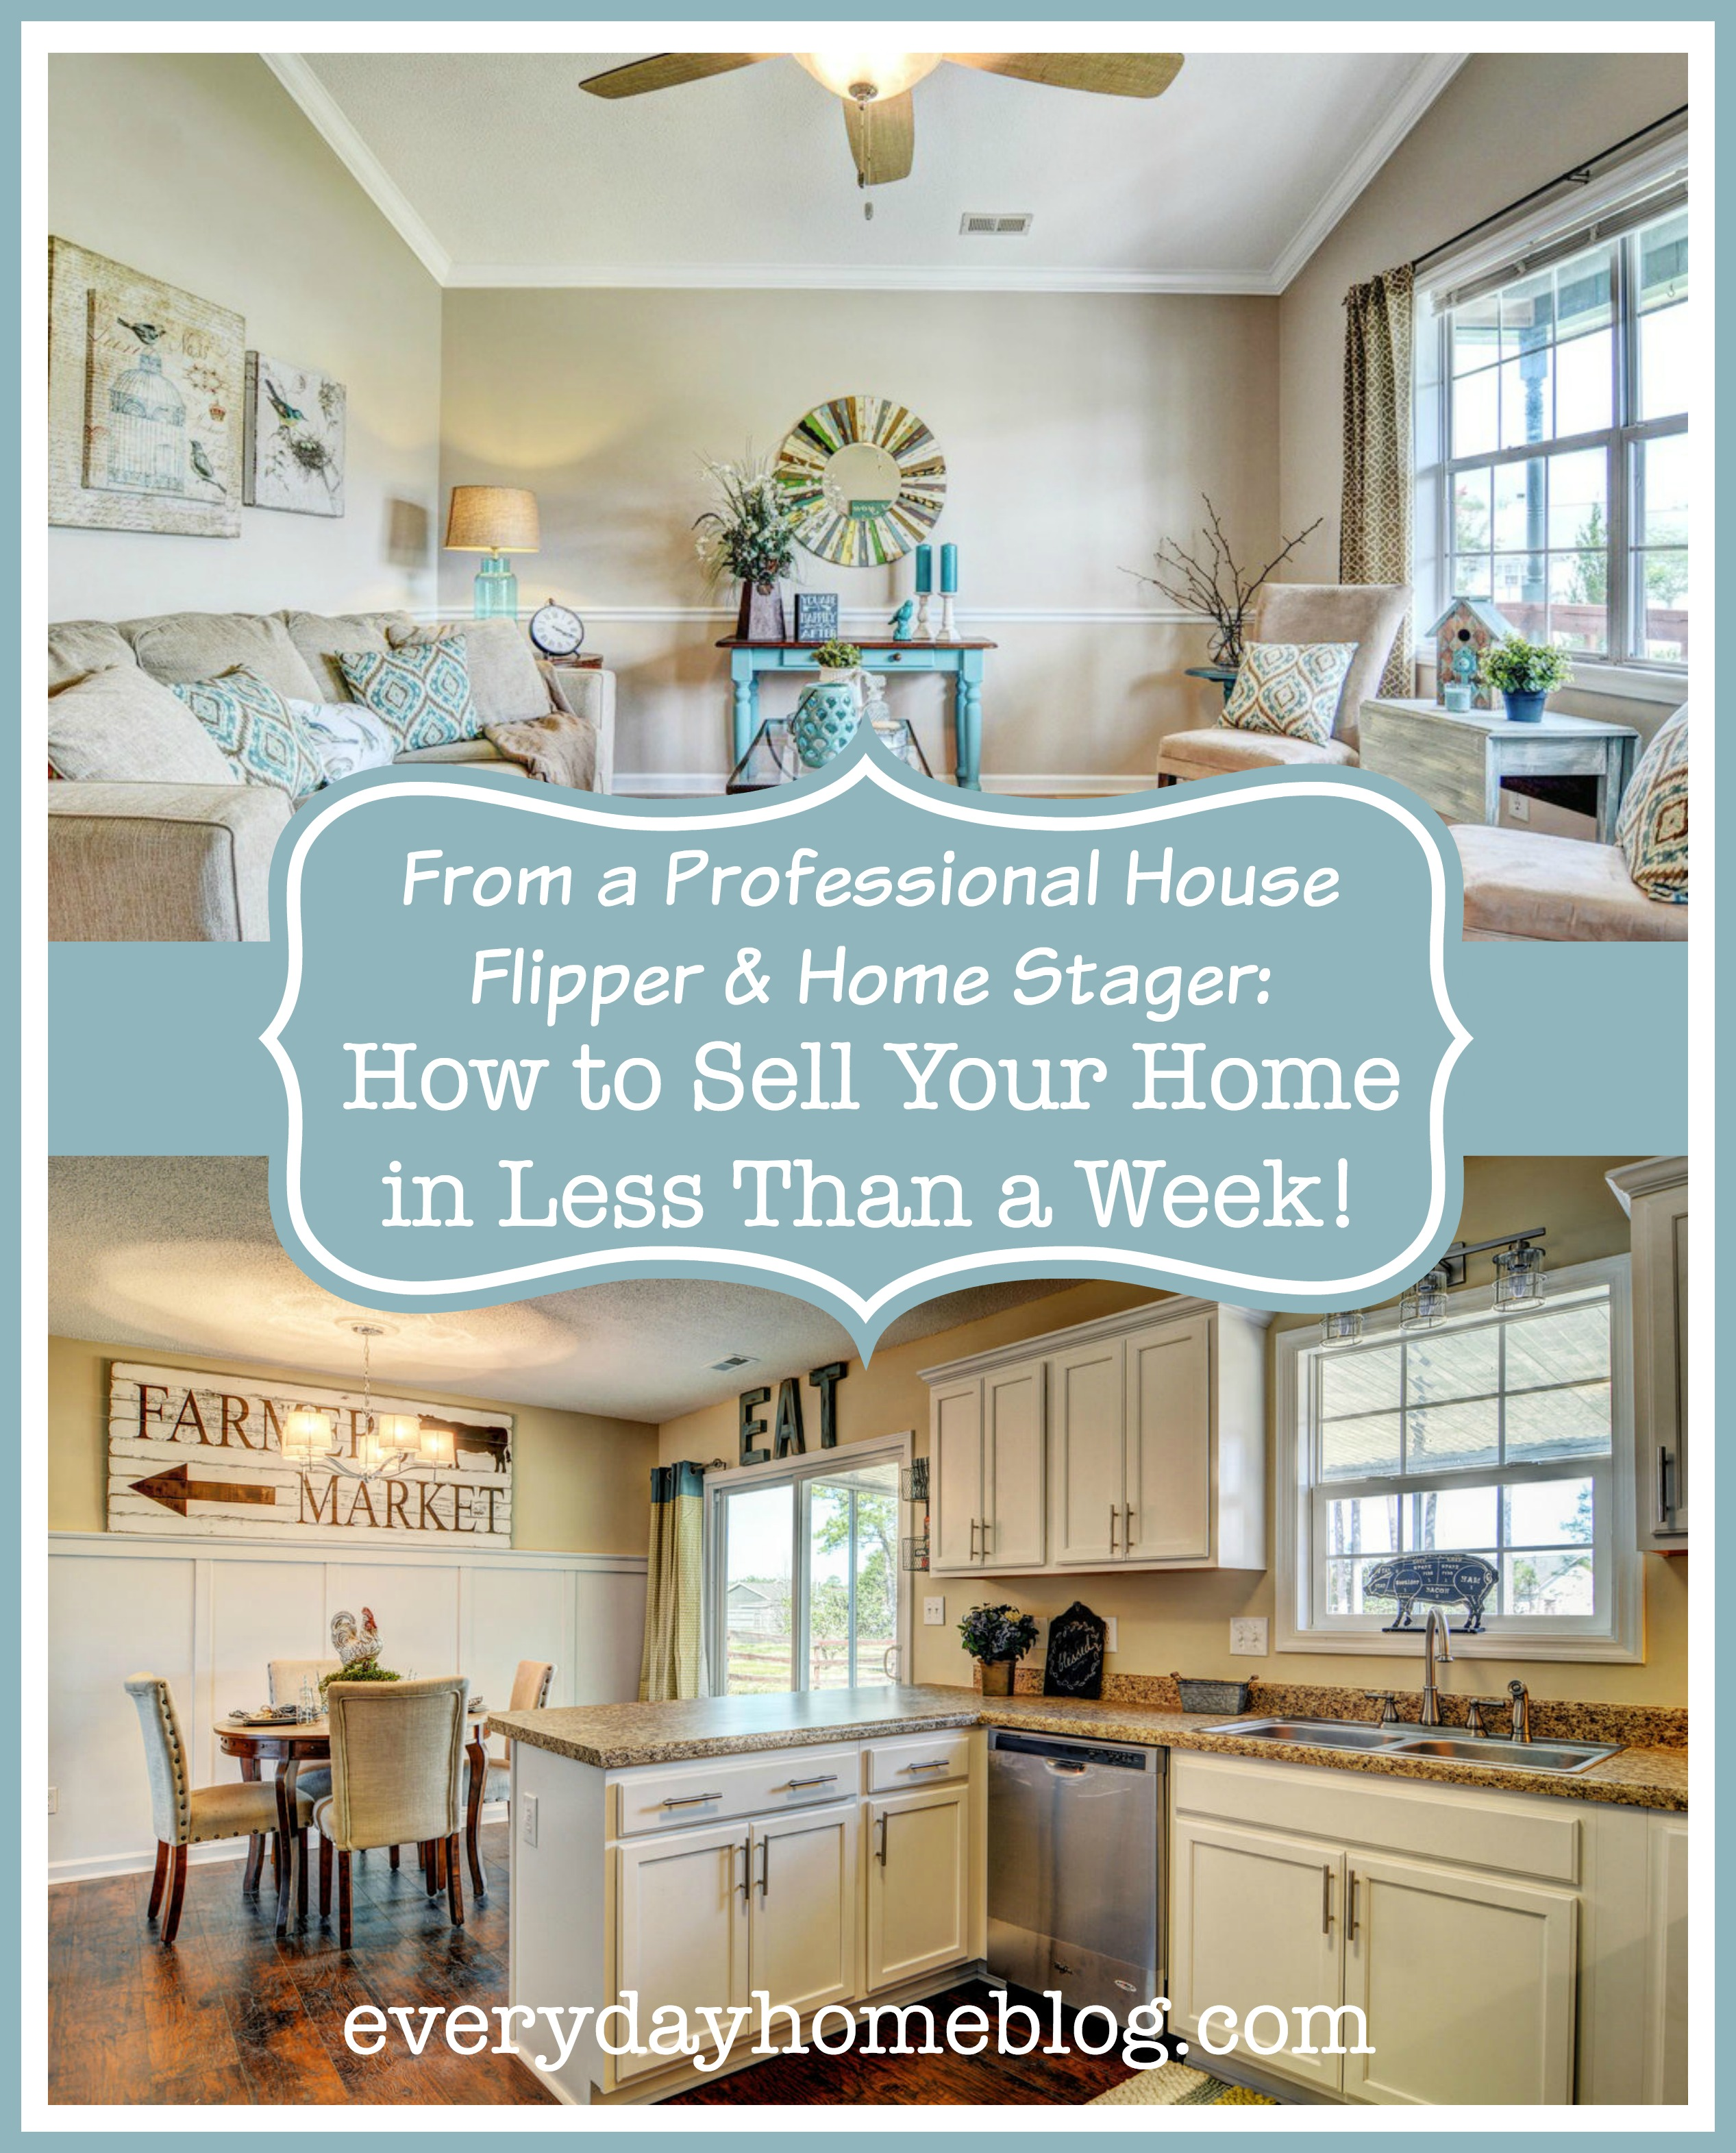 10 Tips for Selling Your Home Fast - The Everyday Home